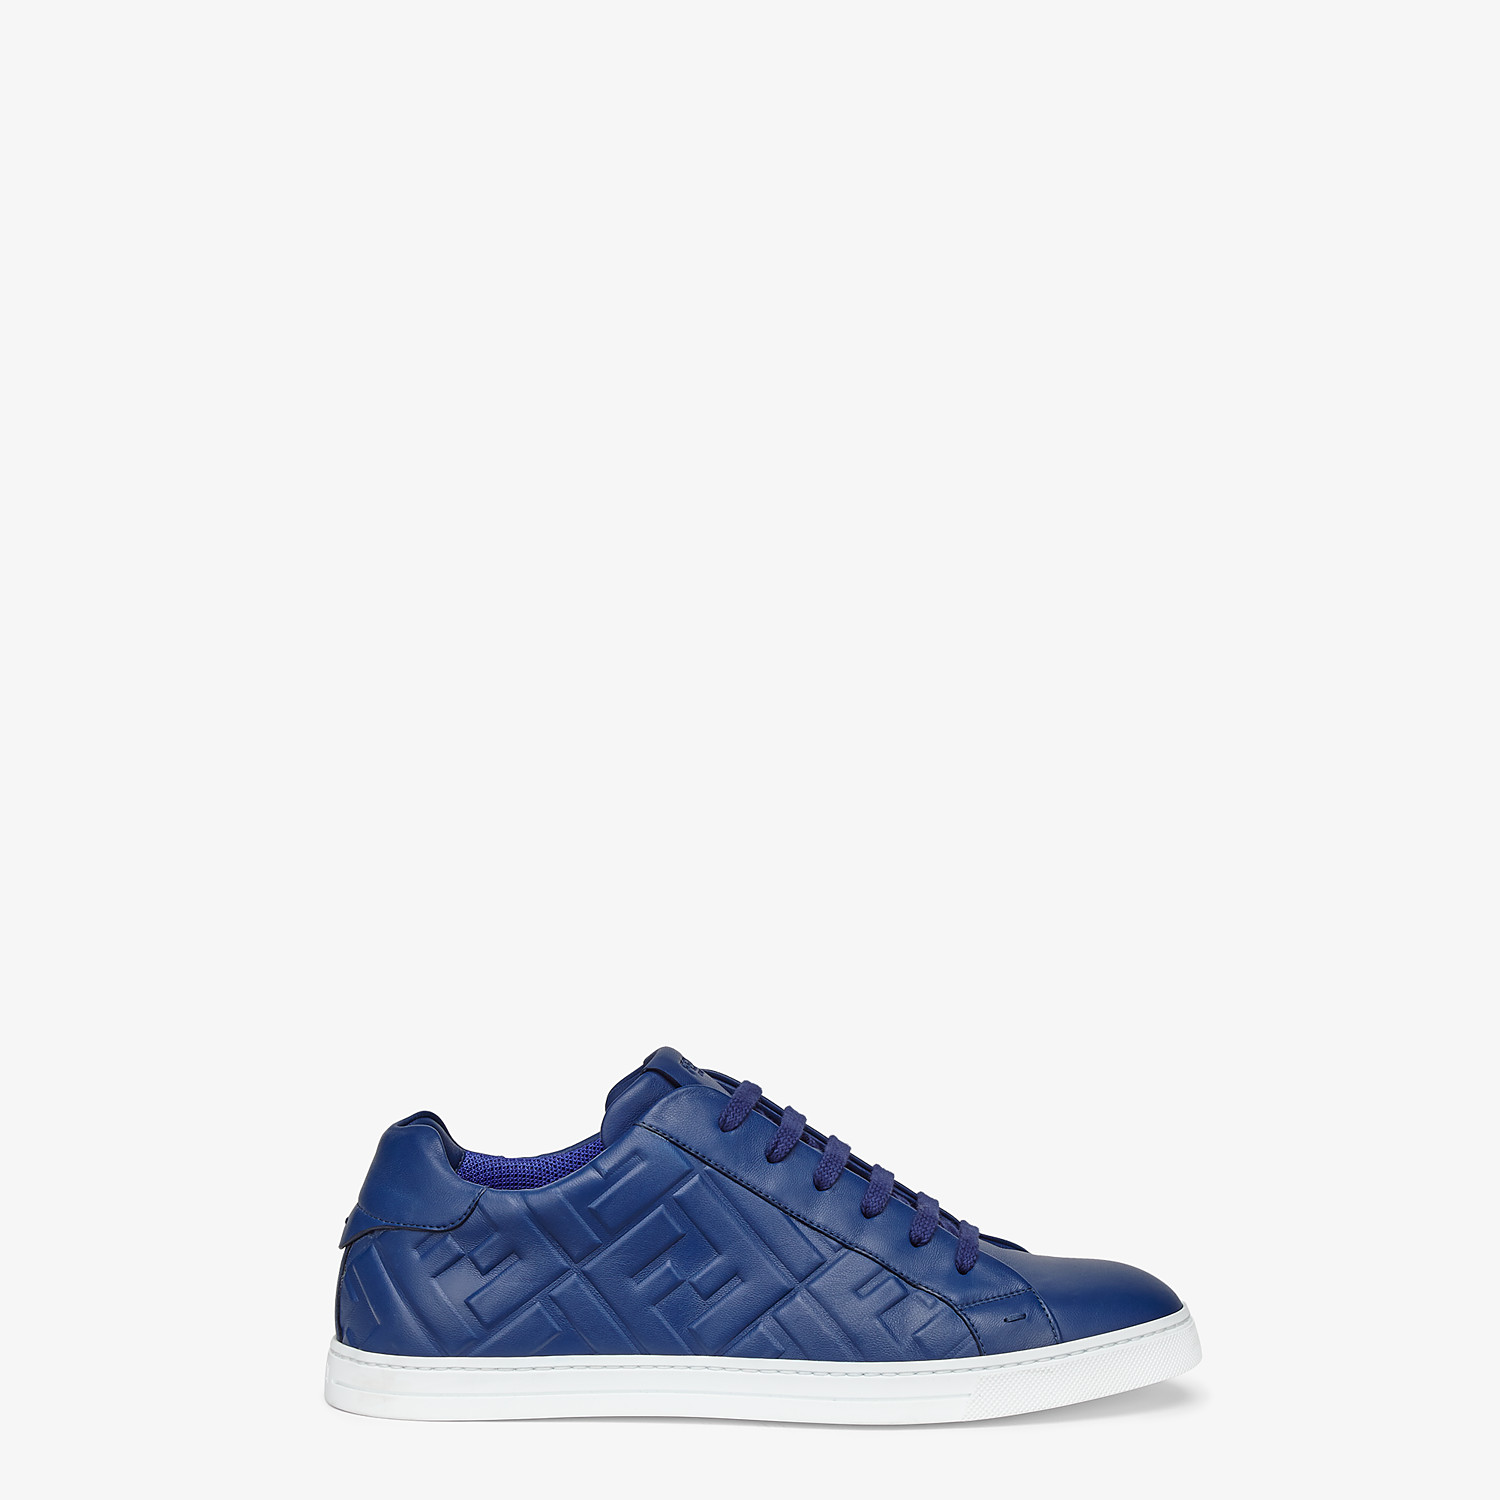 FENDI SNEAKERS - Blue nappa leather low-tops - view 1 detail